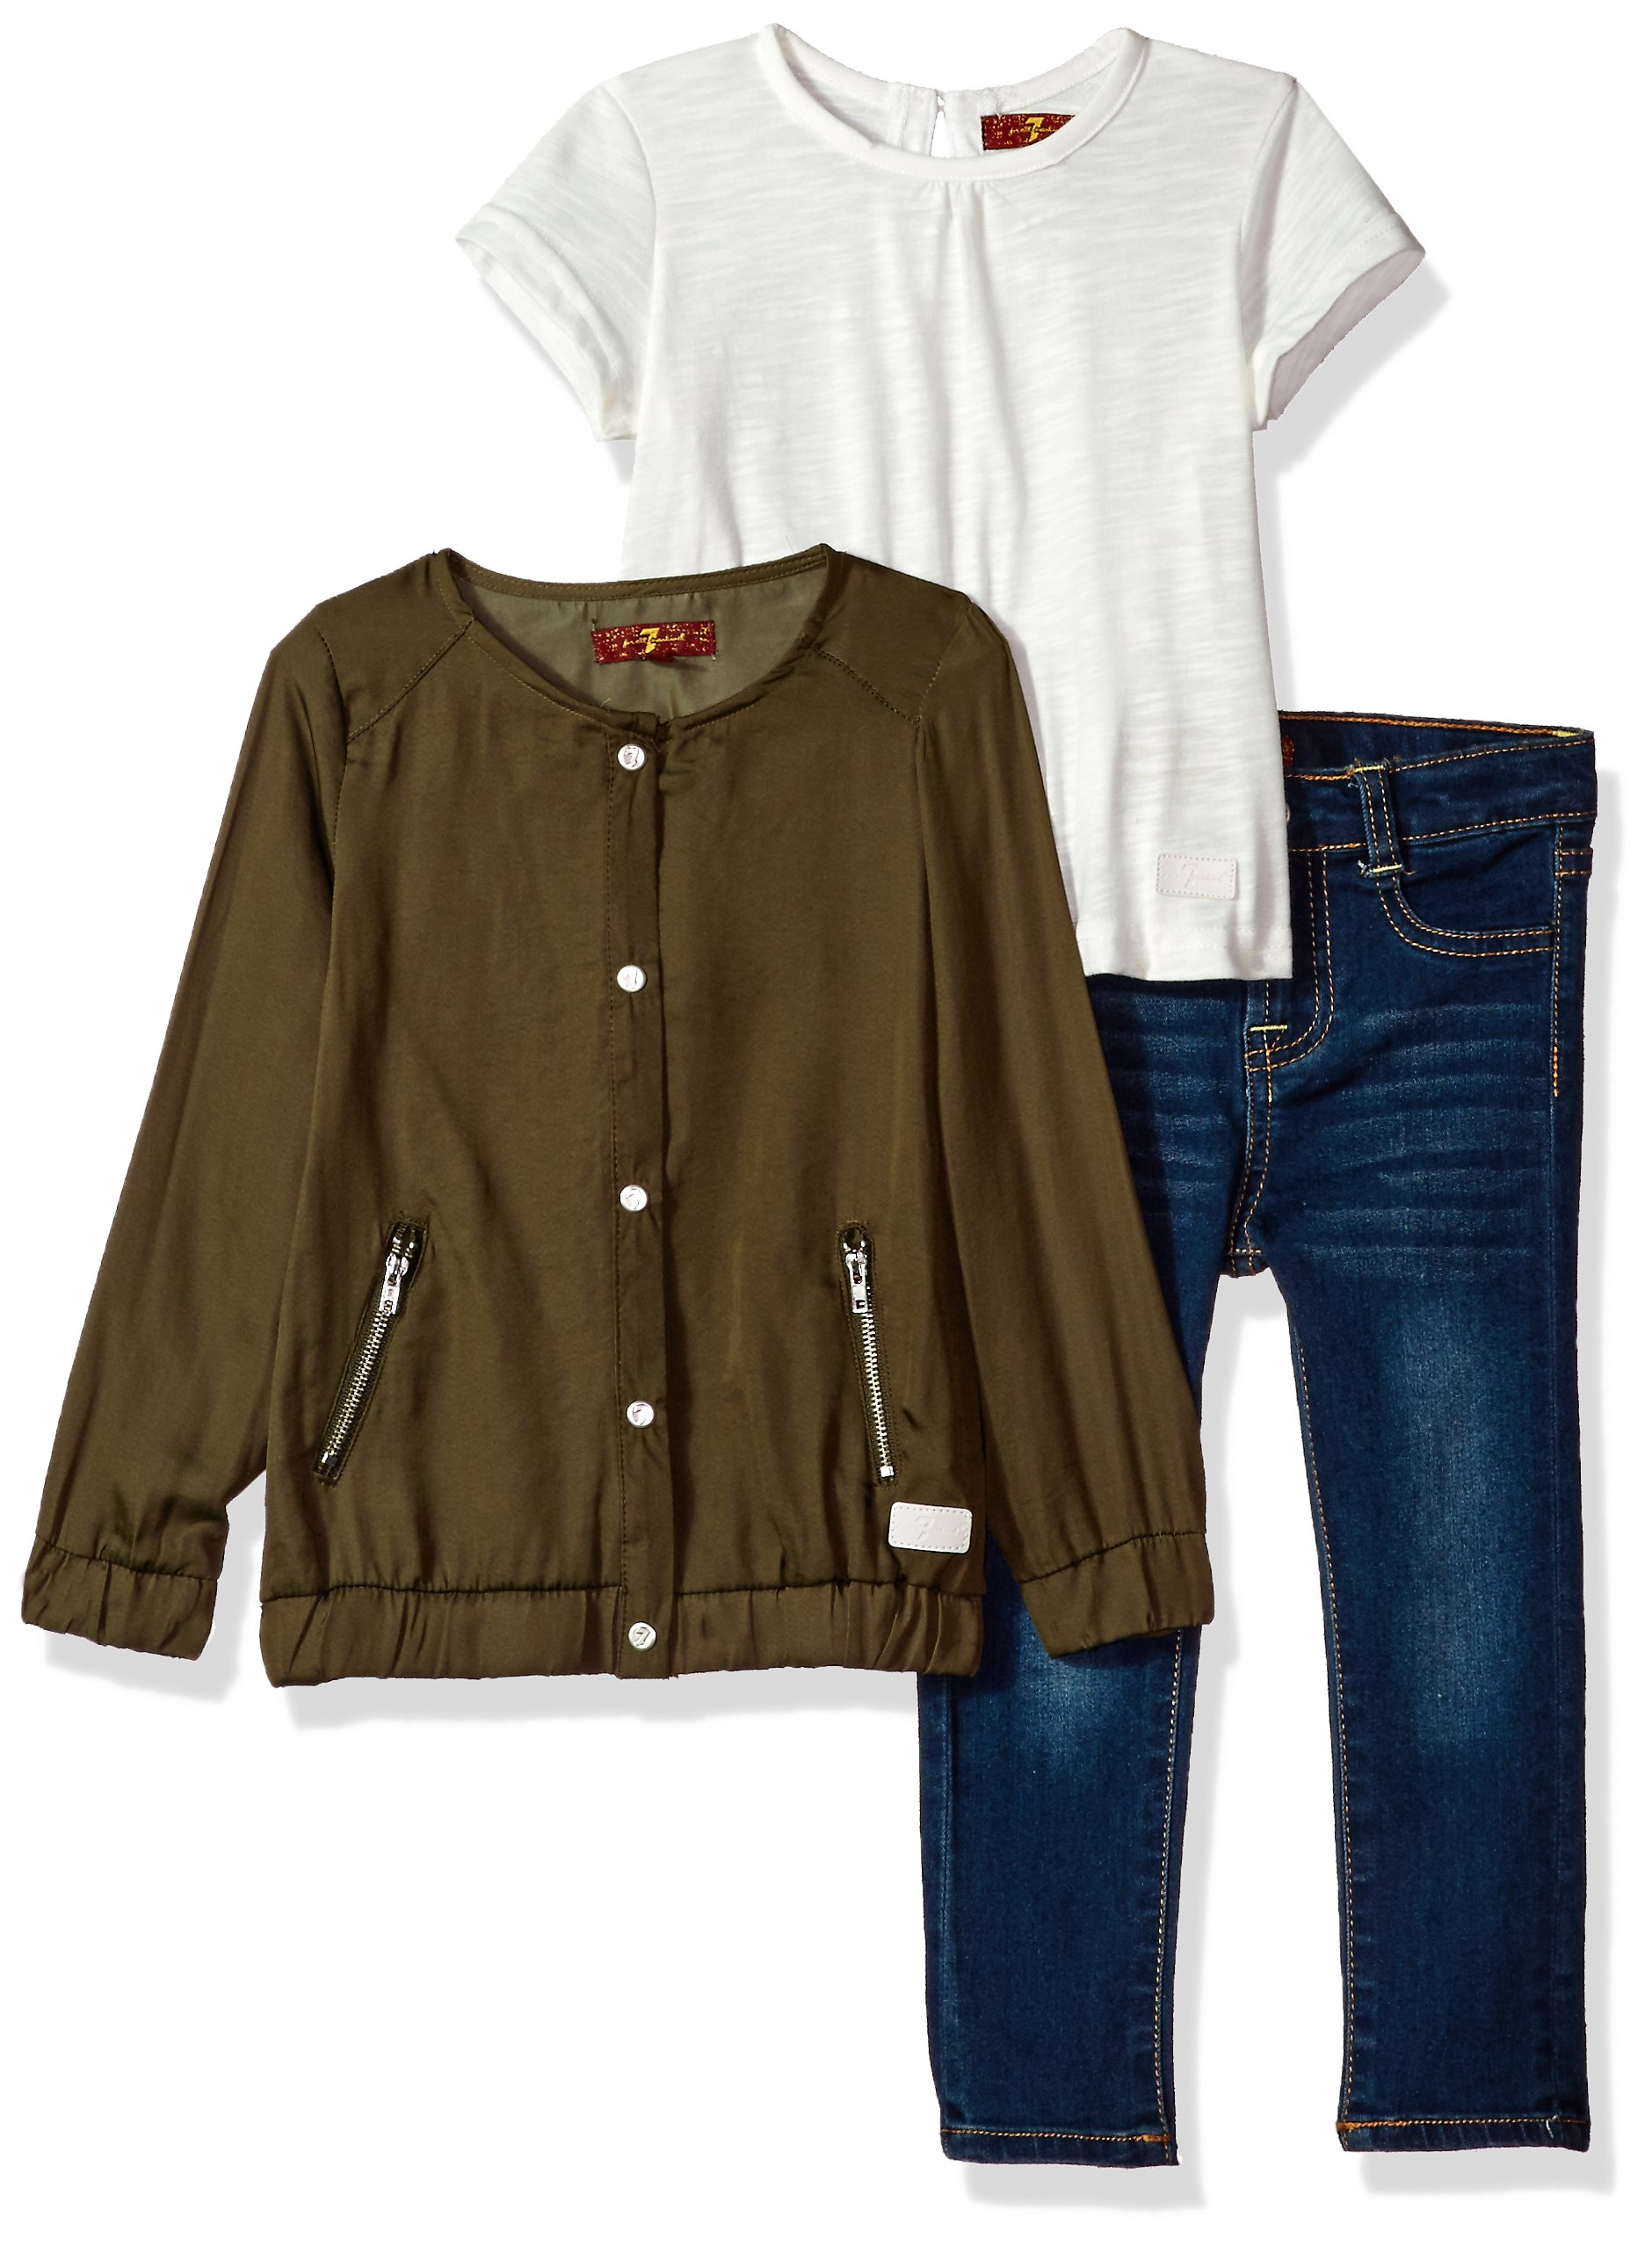 7 For All Mankind Toddler Girls' Jacket, Knit Top and Pant Set (More Styles Available), G3282-Agavegreen, 4T